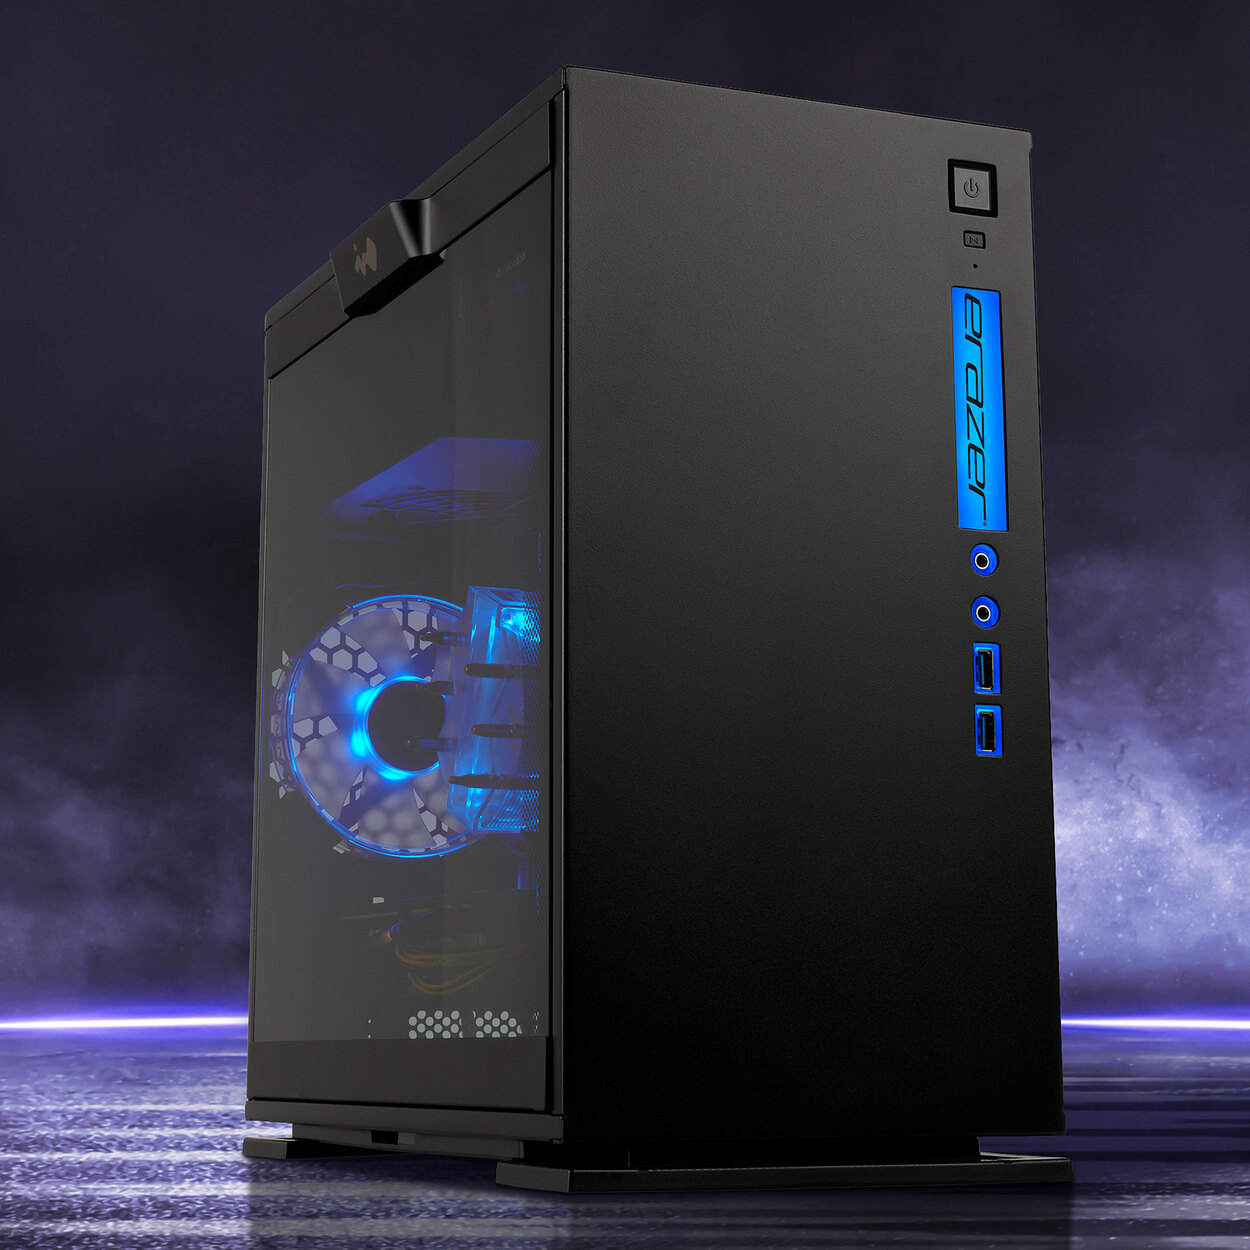 Soon new low-priced Aldi Medion PCs with RTX 3070 and RTX 3080